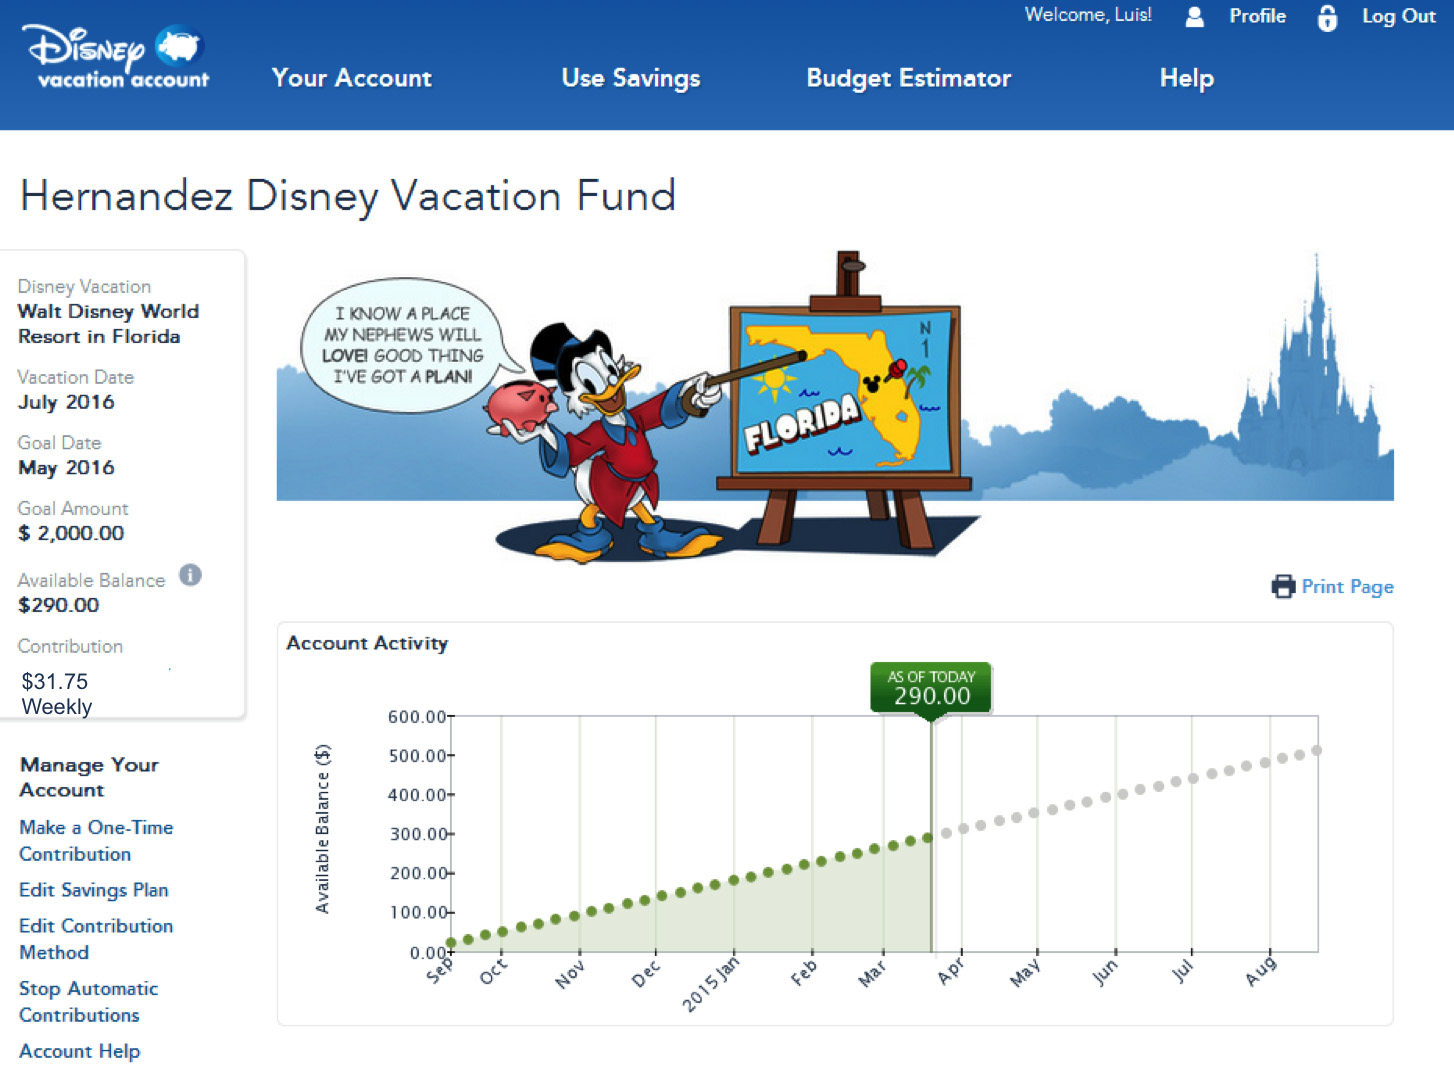 Disney Vacation Account Helps You Plan Save For Future Disney Vacations